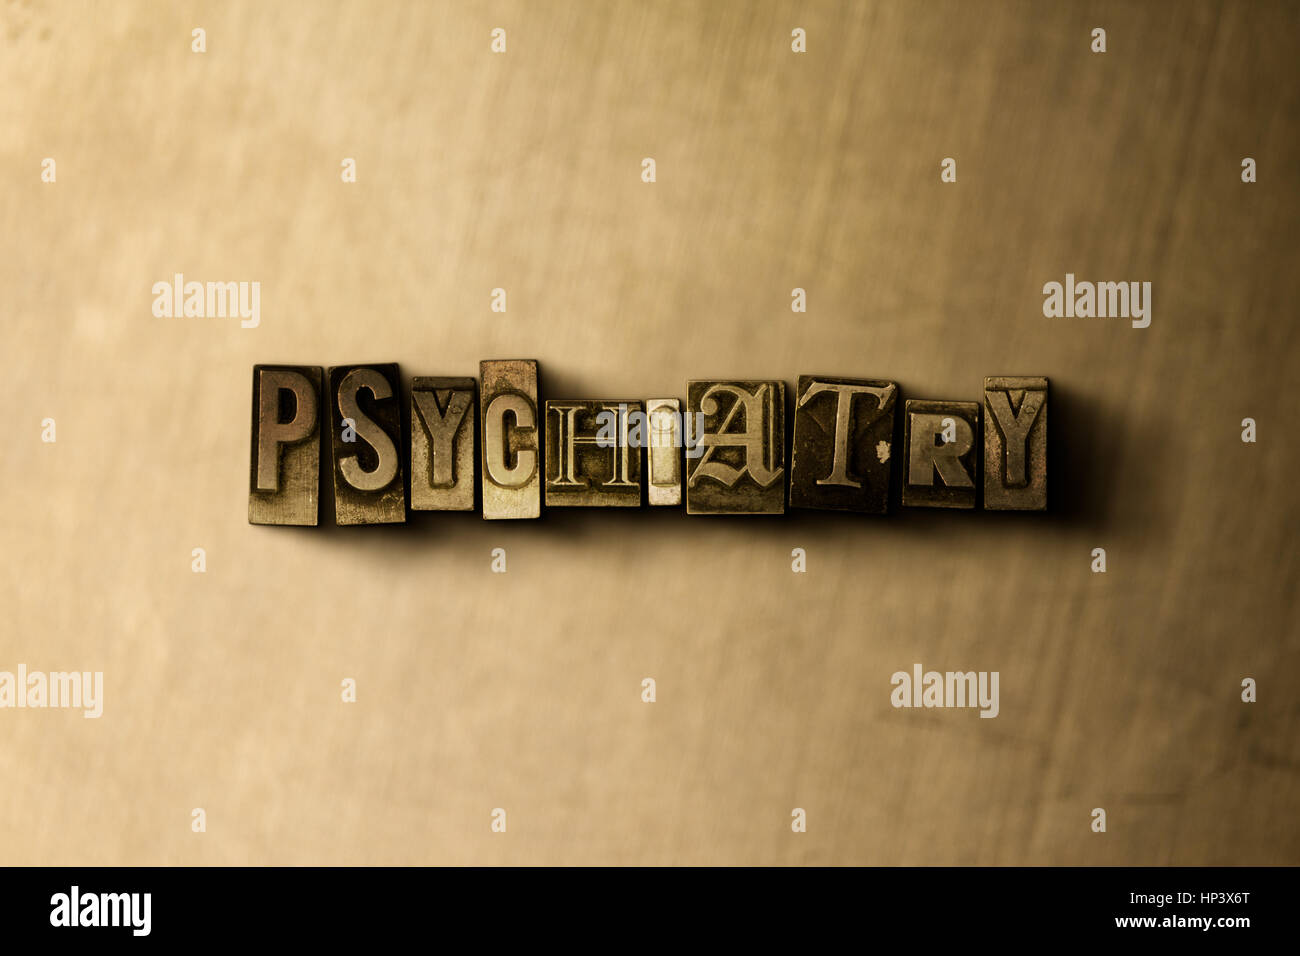 Psychiatry Symbol Stockfotos & Psychiatry Symbol Bilder - Alamy